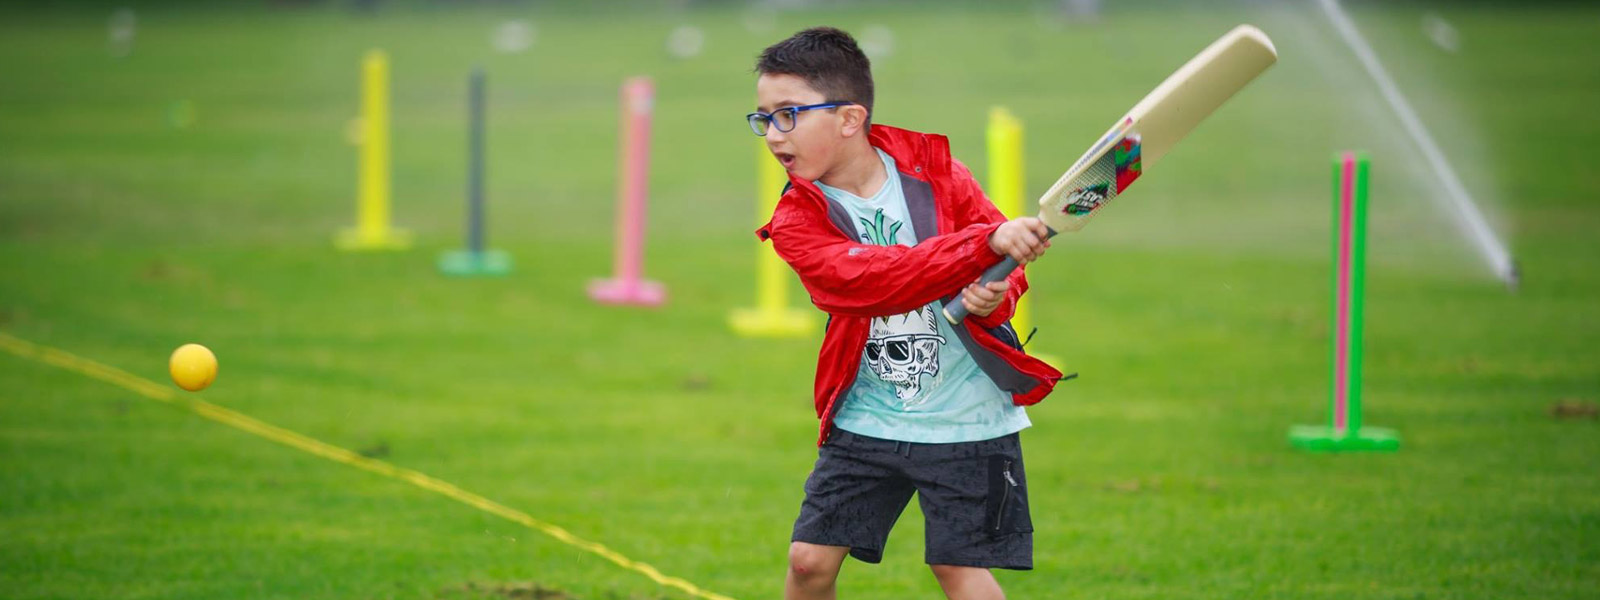 Cricket Clinics For Kids